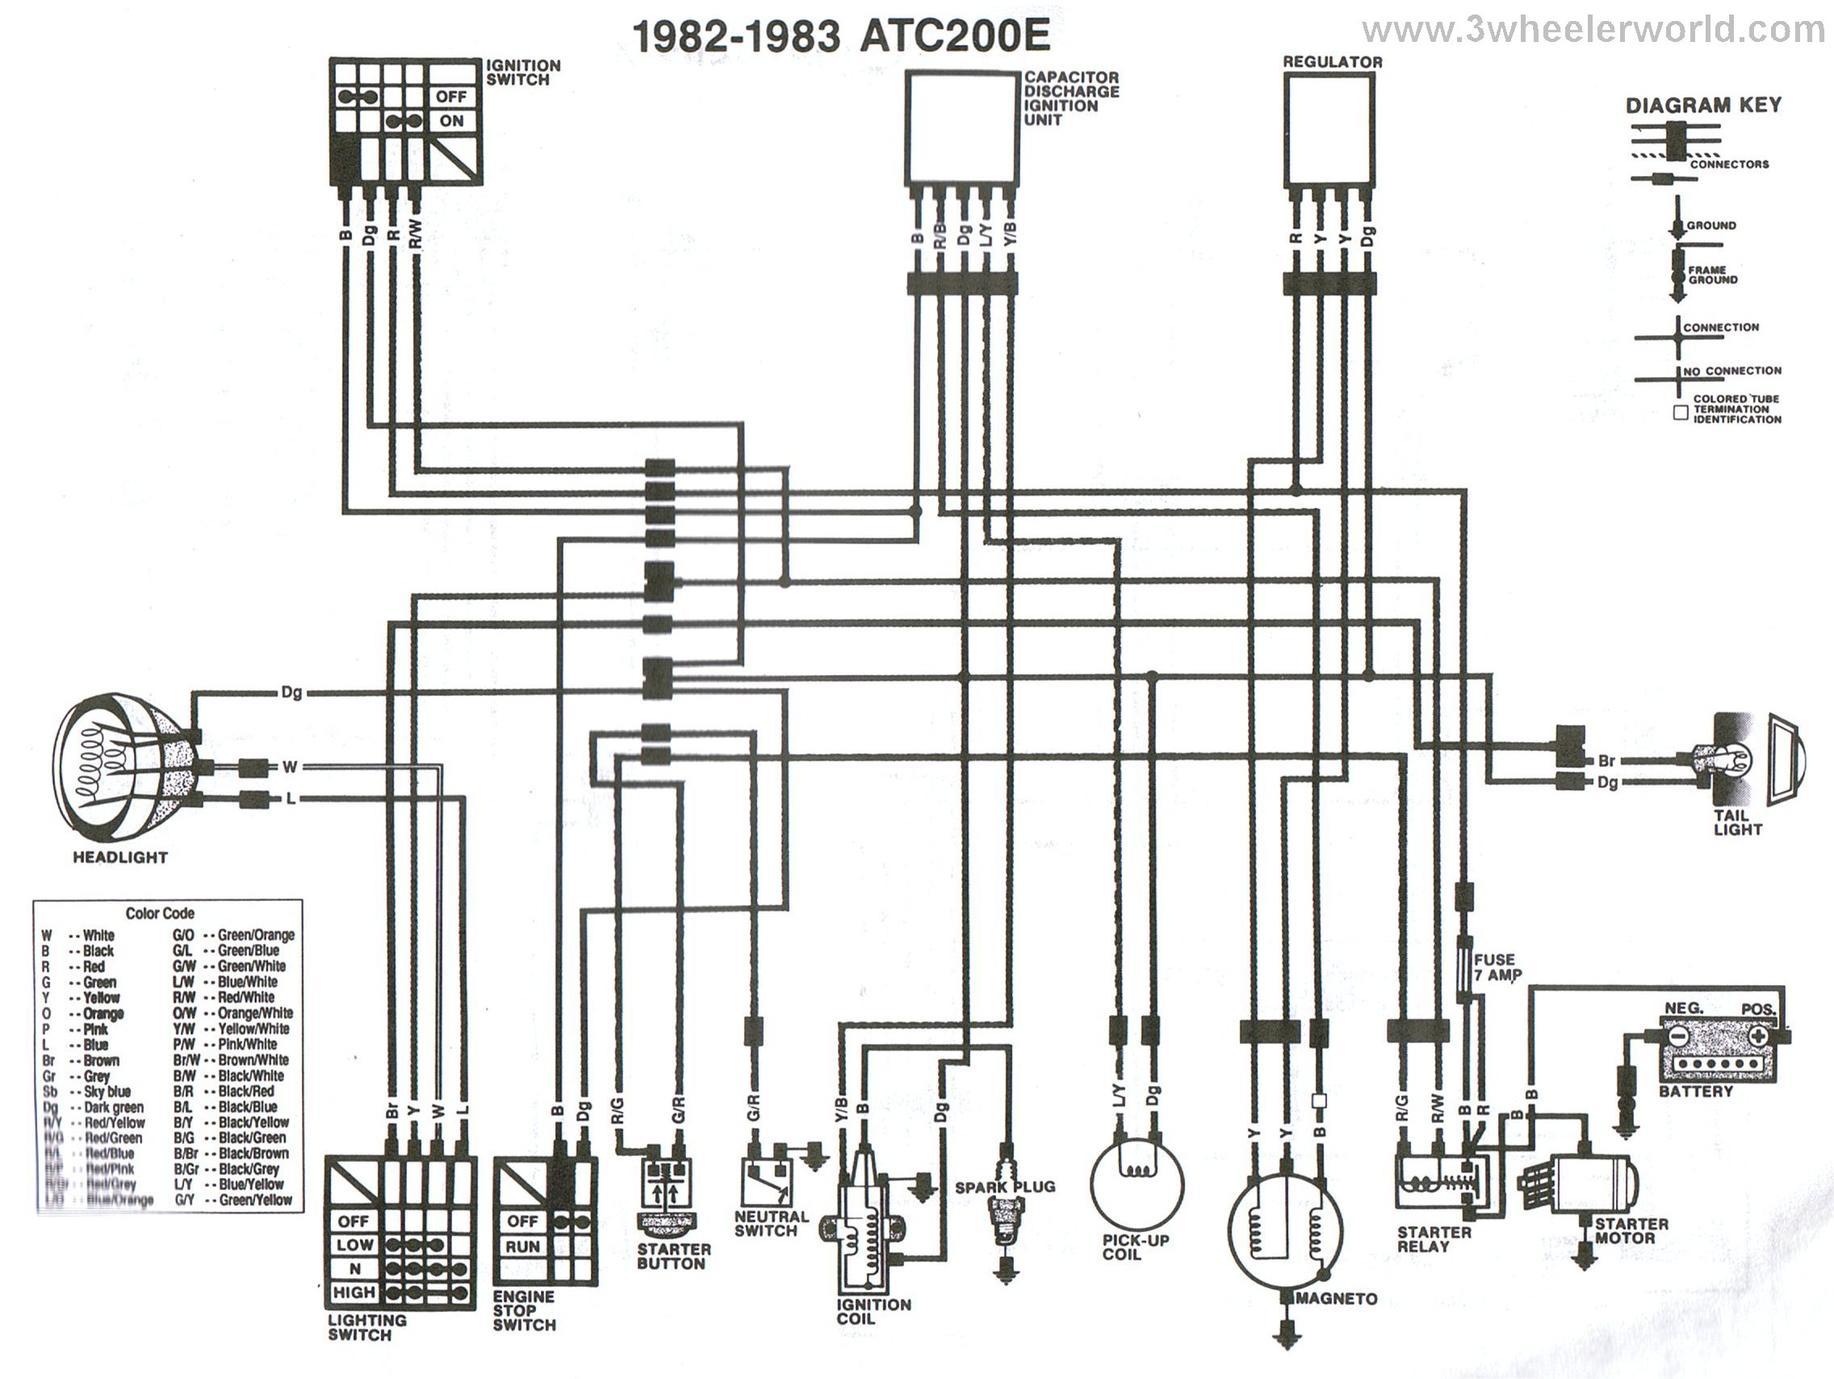 Wiring Diagram 1983 Yamaha It Library Virago 920 3wheeler World Honda Atc Diagrams Dt 250 Et